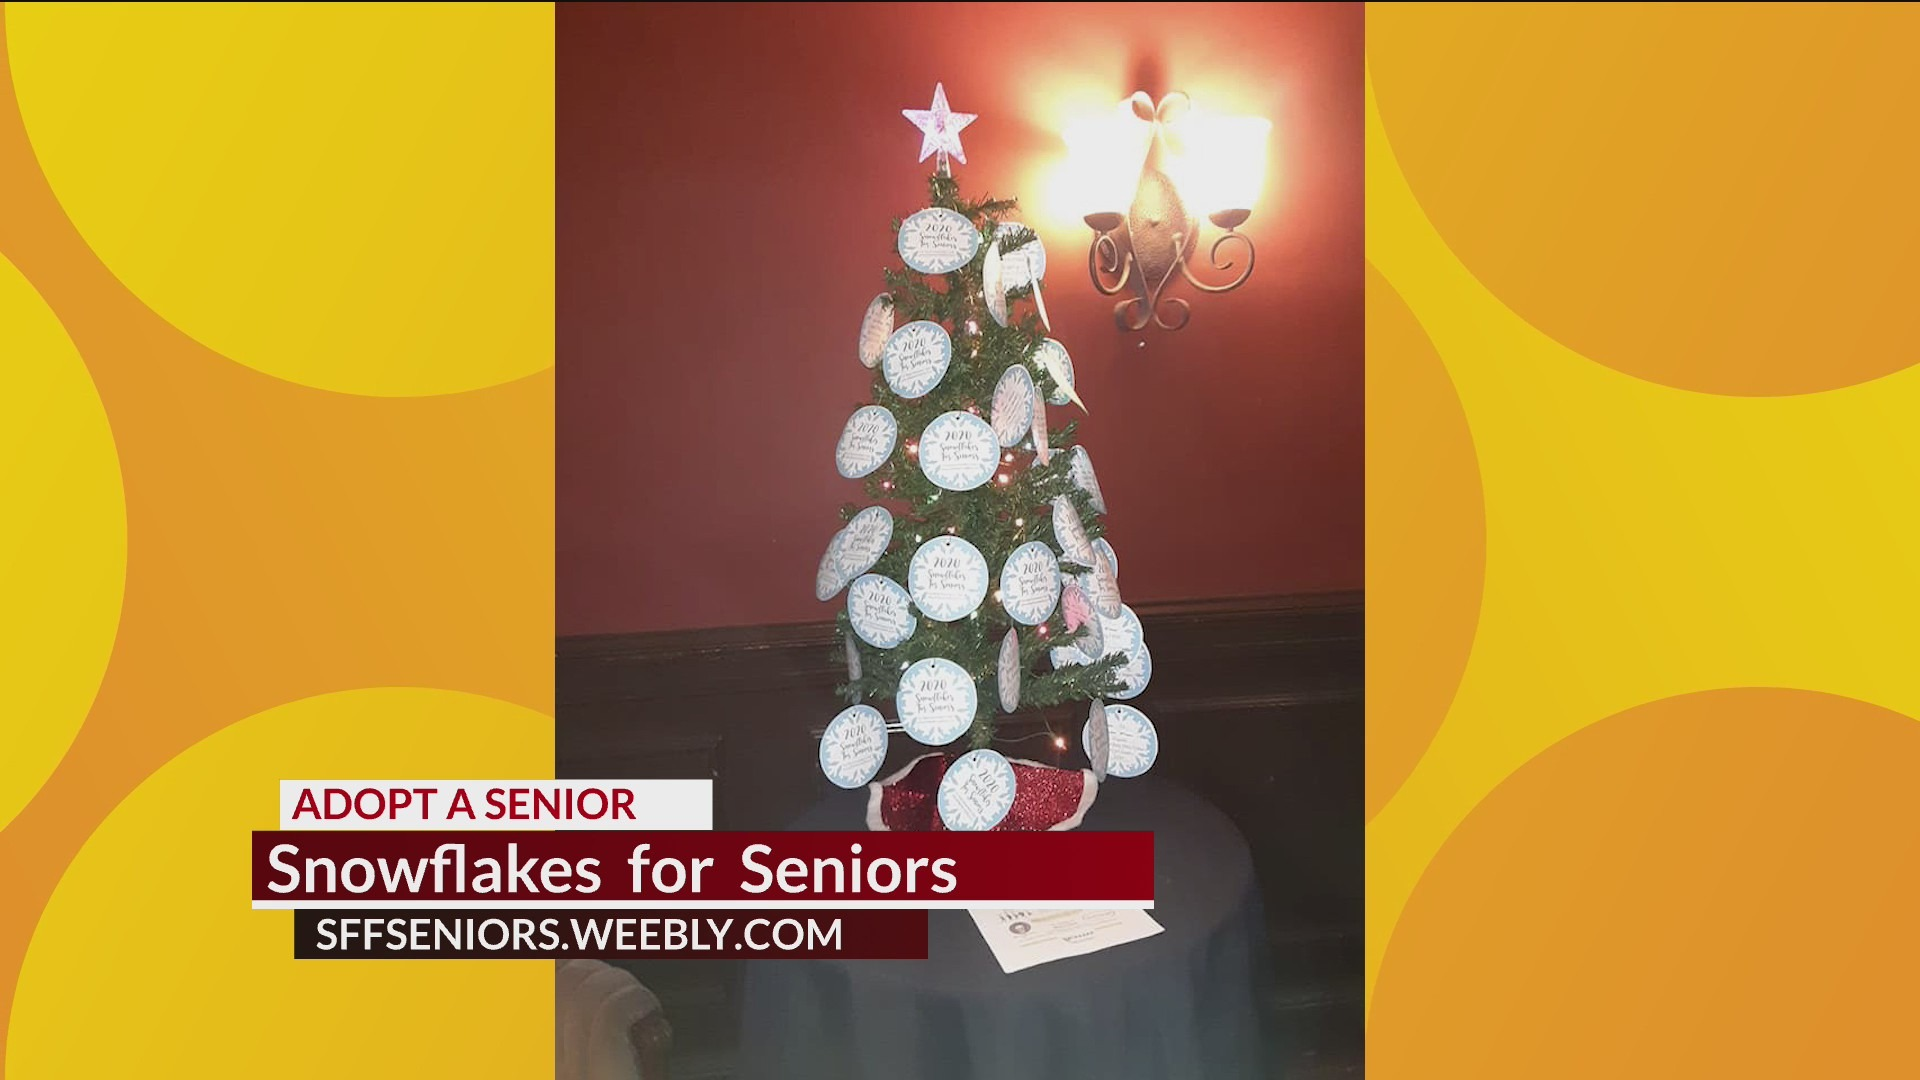 Snow Flakes for Seniors